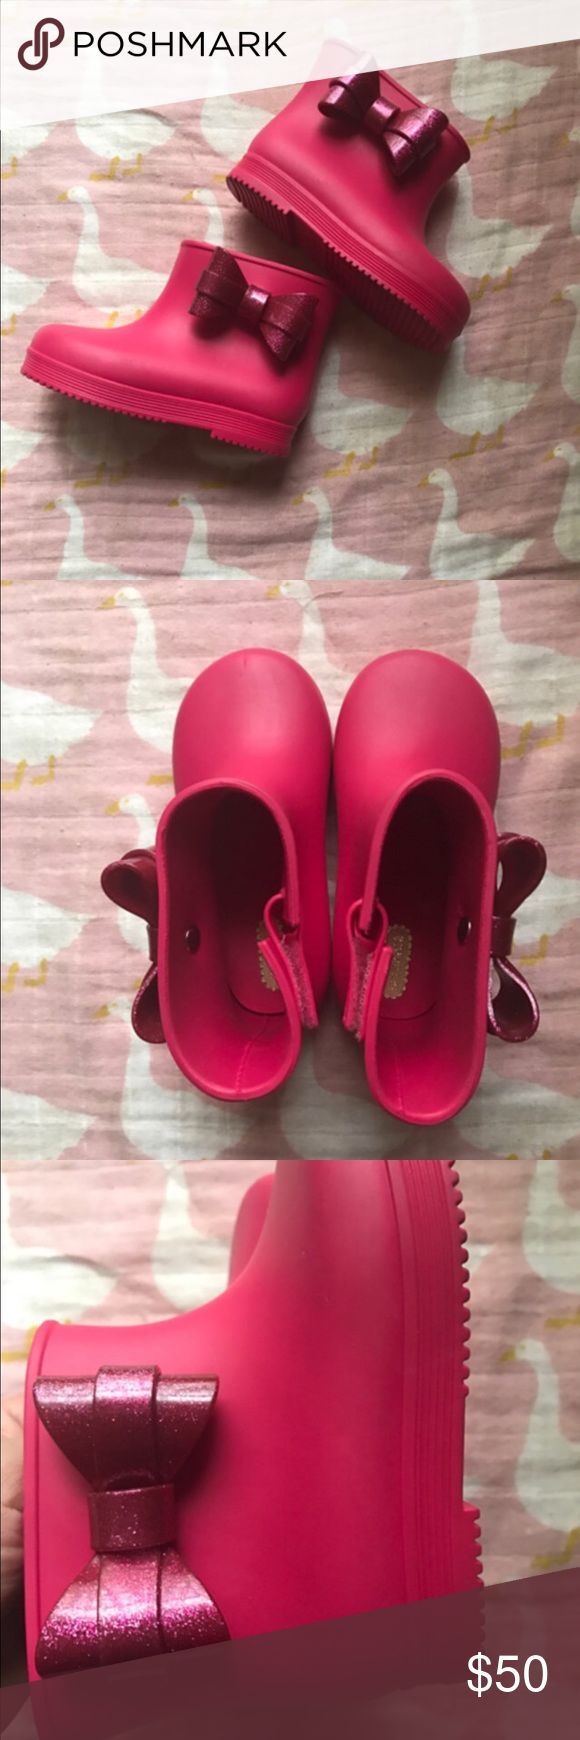 NWOT Mini Melissa pink rain boots From Nordstrom Rack- might have some mild signs of being tried on at store. Just available until they fit my Lolo. Perfect match to Boden Galaxy dress! Retail $65 Mini Melissa Shoes Boots